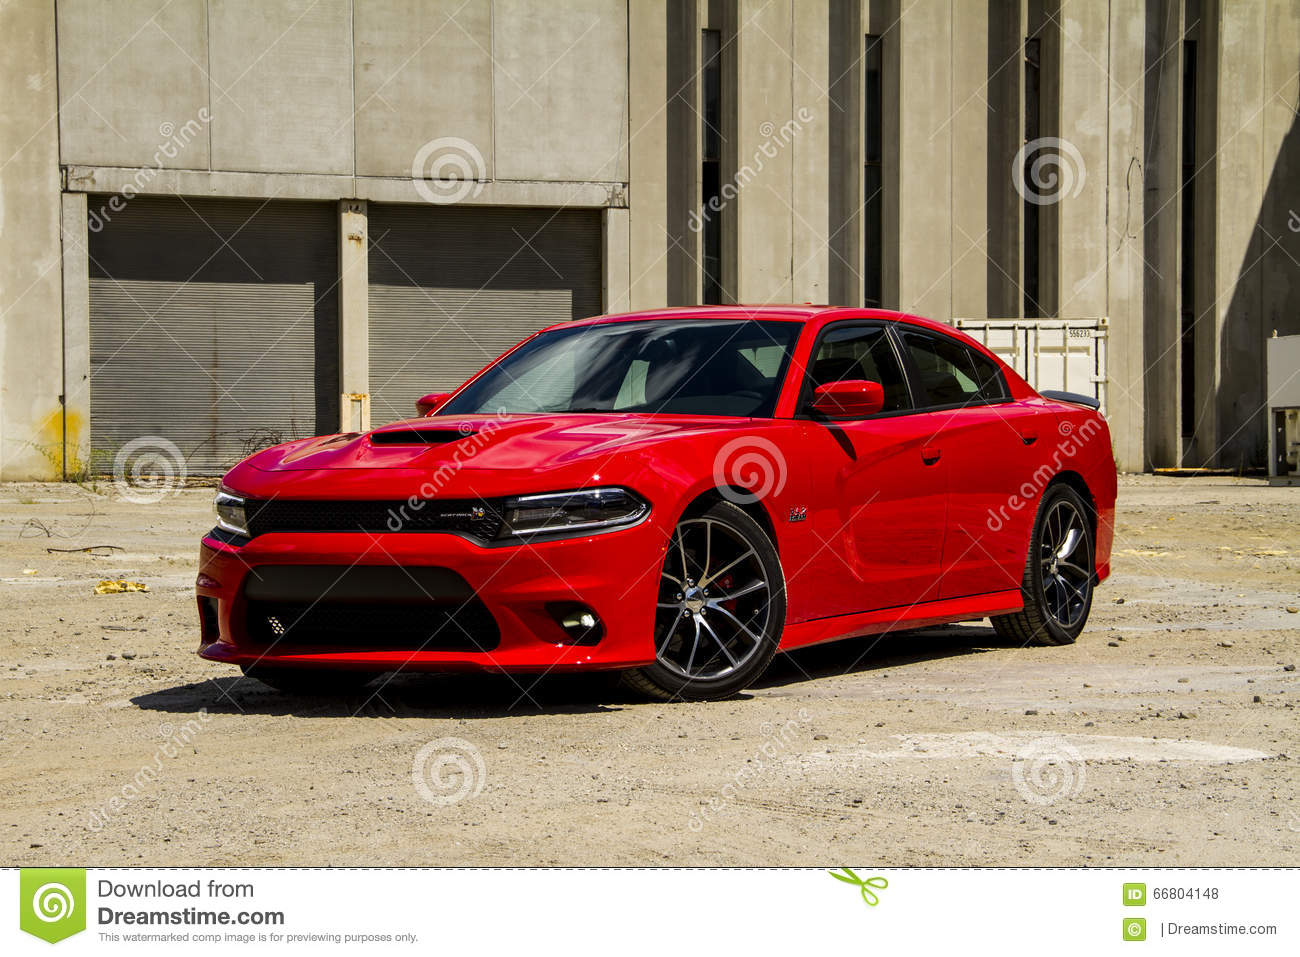 2015-2016 bloco do carregador R/T Scat de Dodge